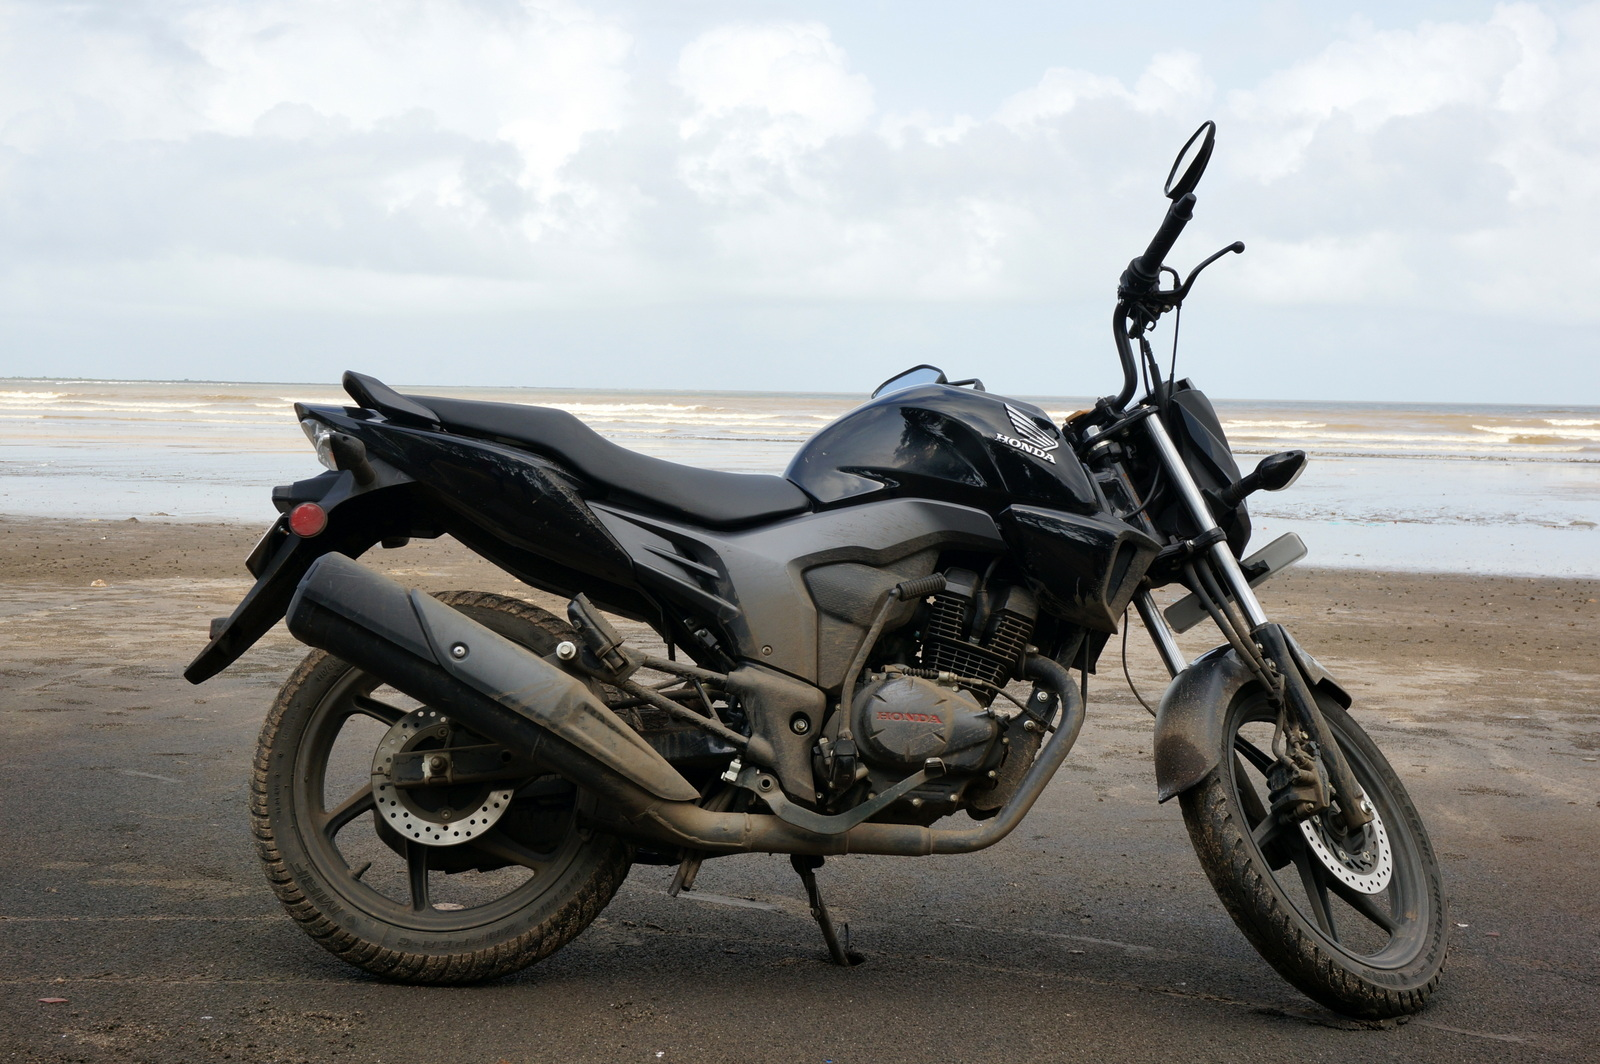 Two-wheeler insurance for three years